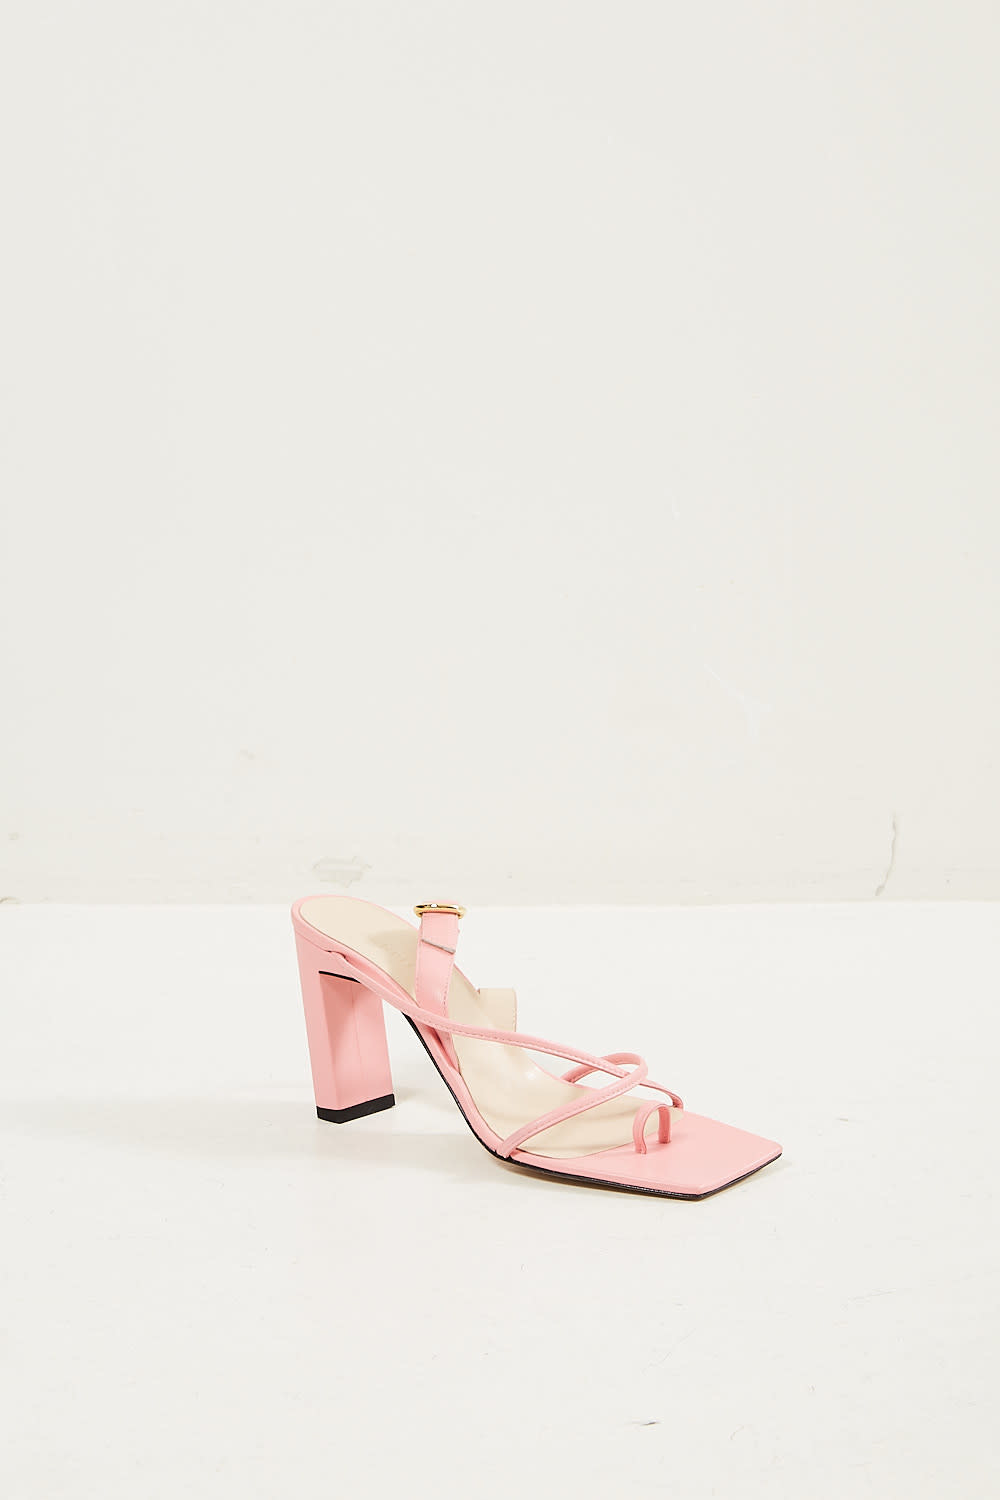 Wandler - Elza lambskin leather sandal